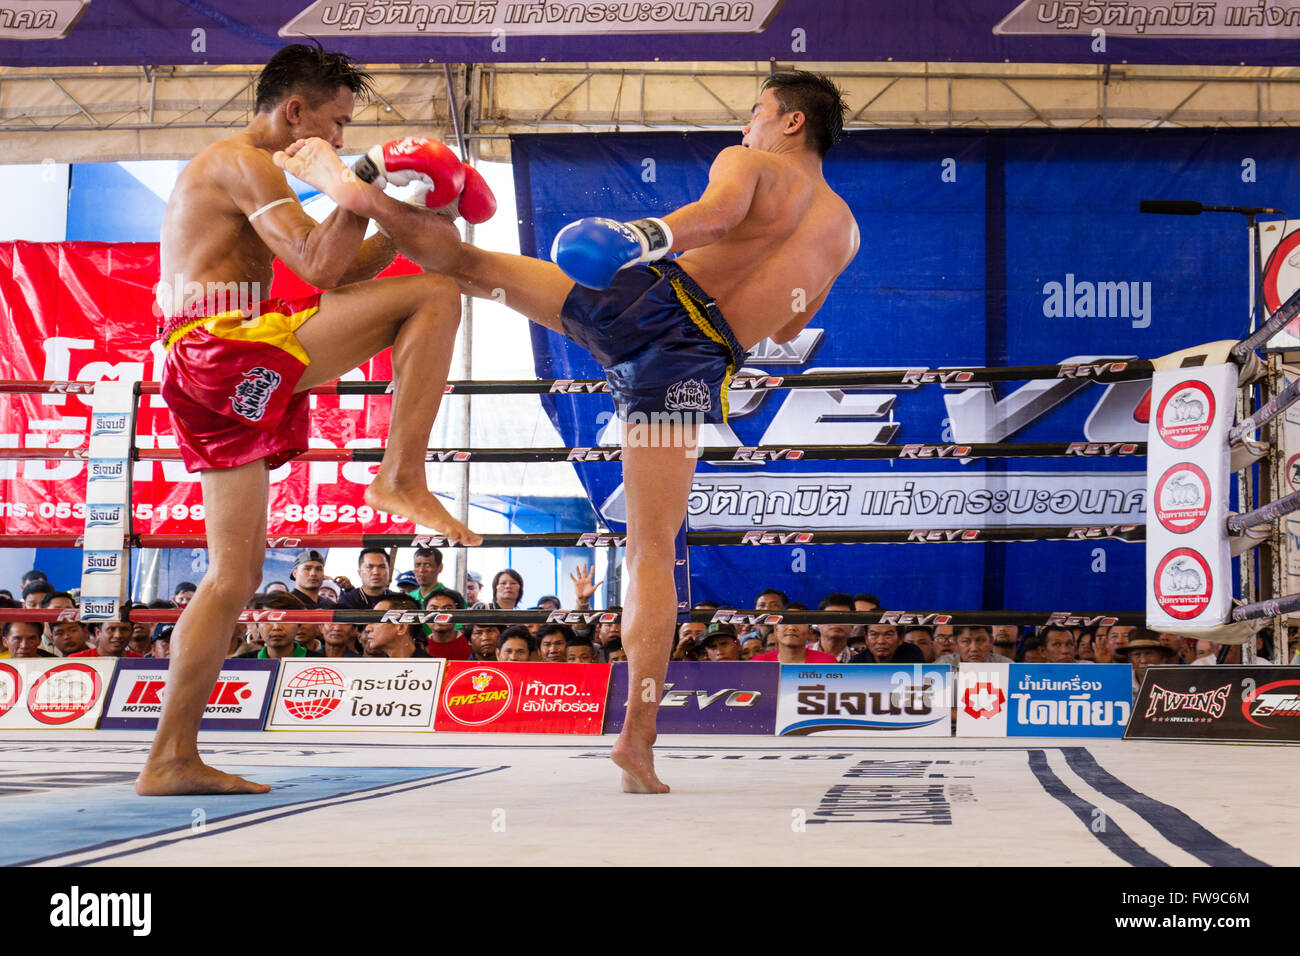 Muay Thai, Thai boxing, two men fighting in the boxing ring, Thailand - Stock Image